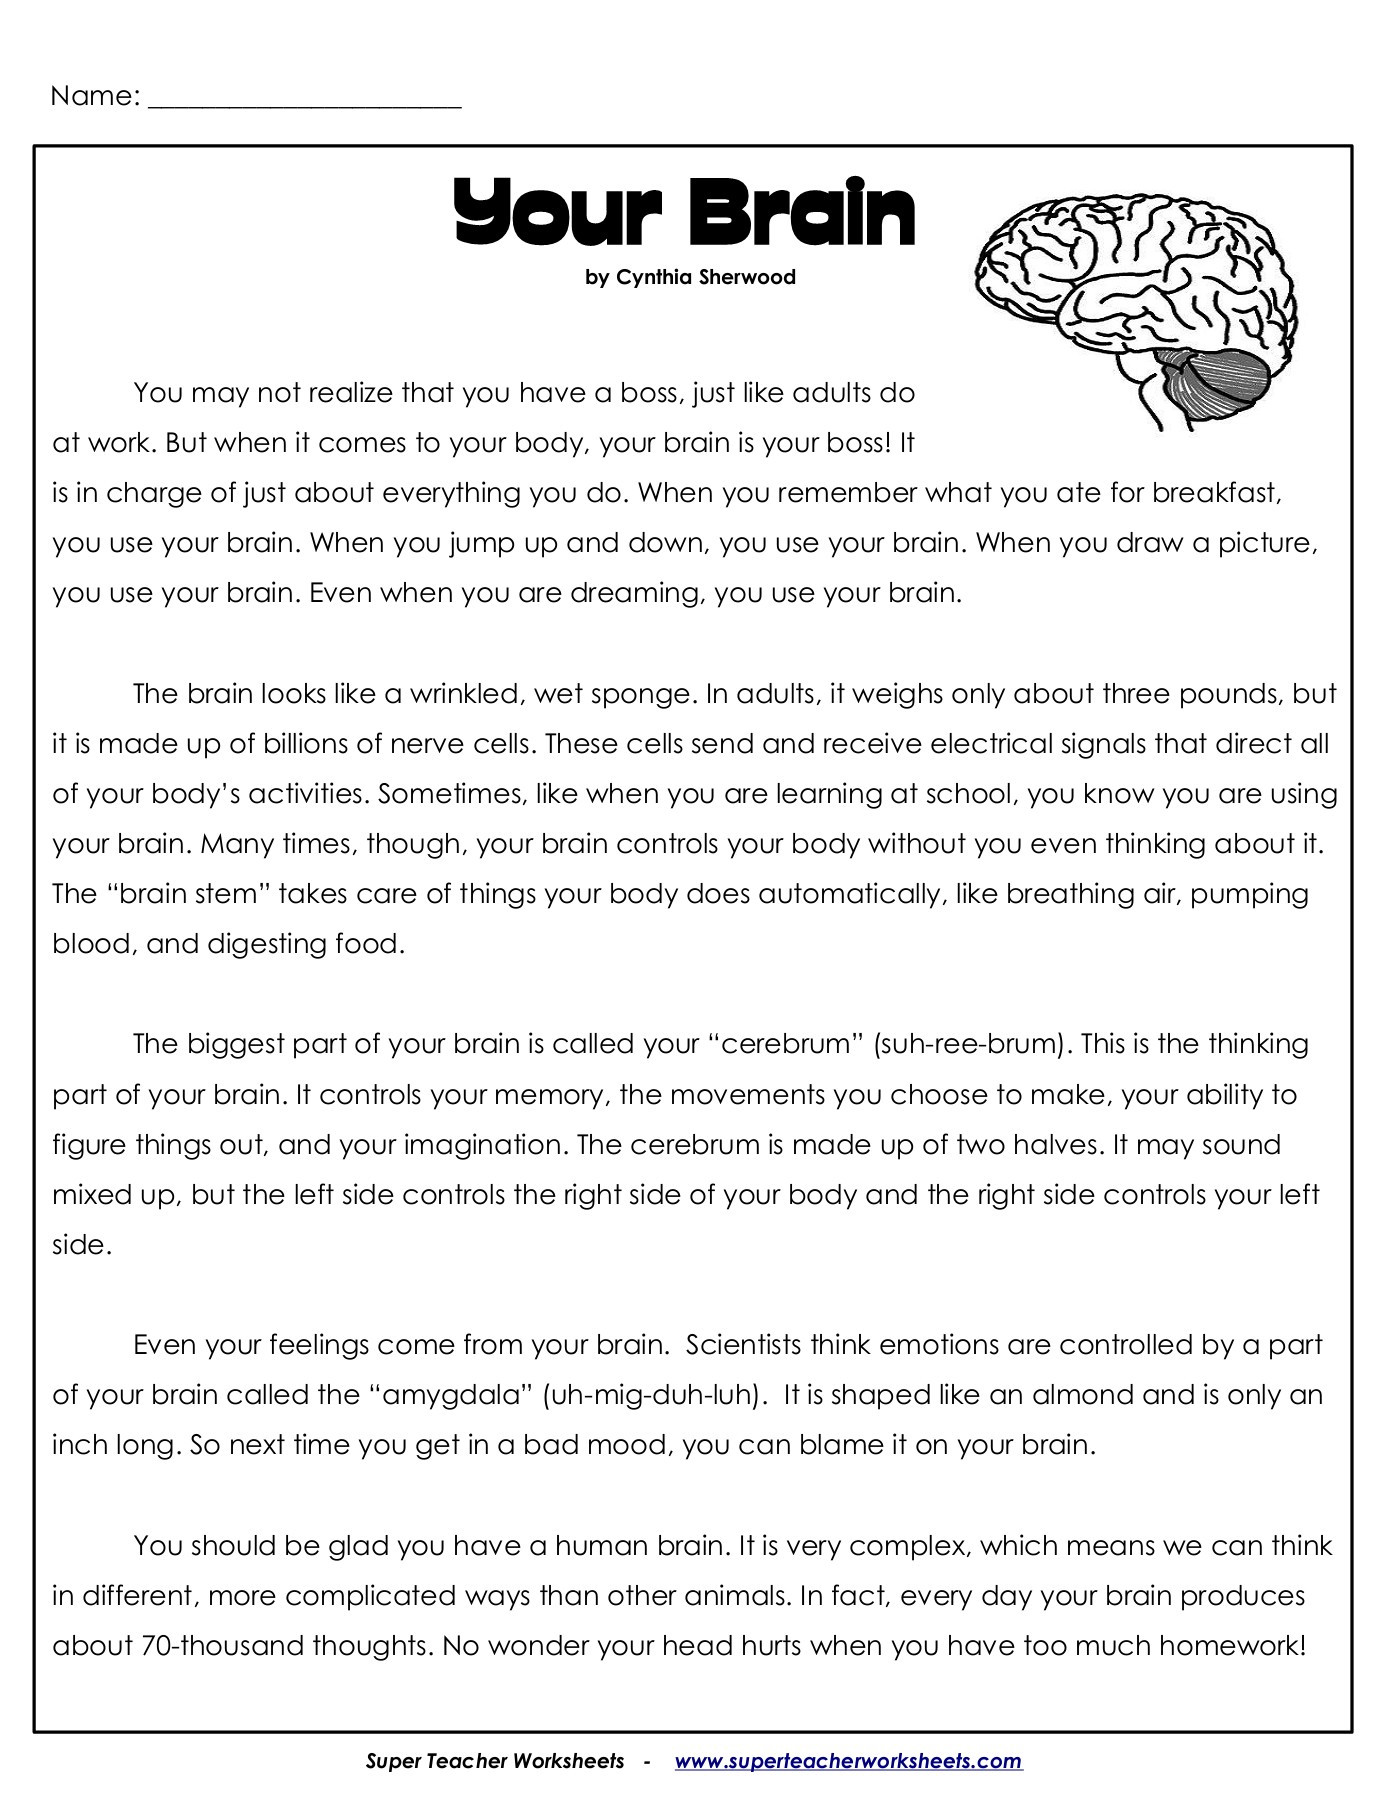 3rd Grade Human Body Worksheets Your Brain Superteacherworksheets Human Body Super Teacher